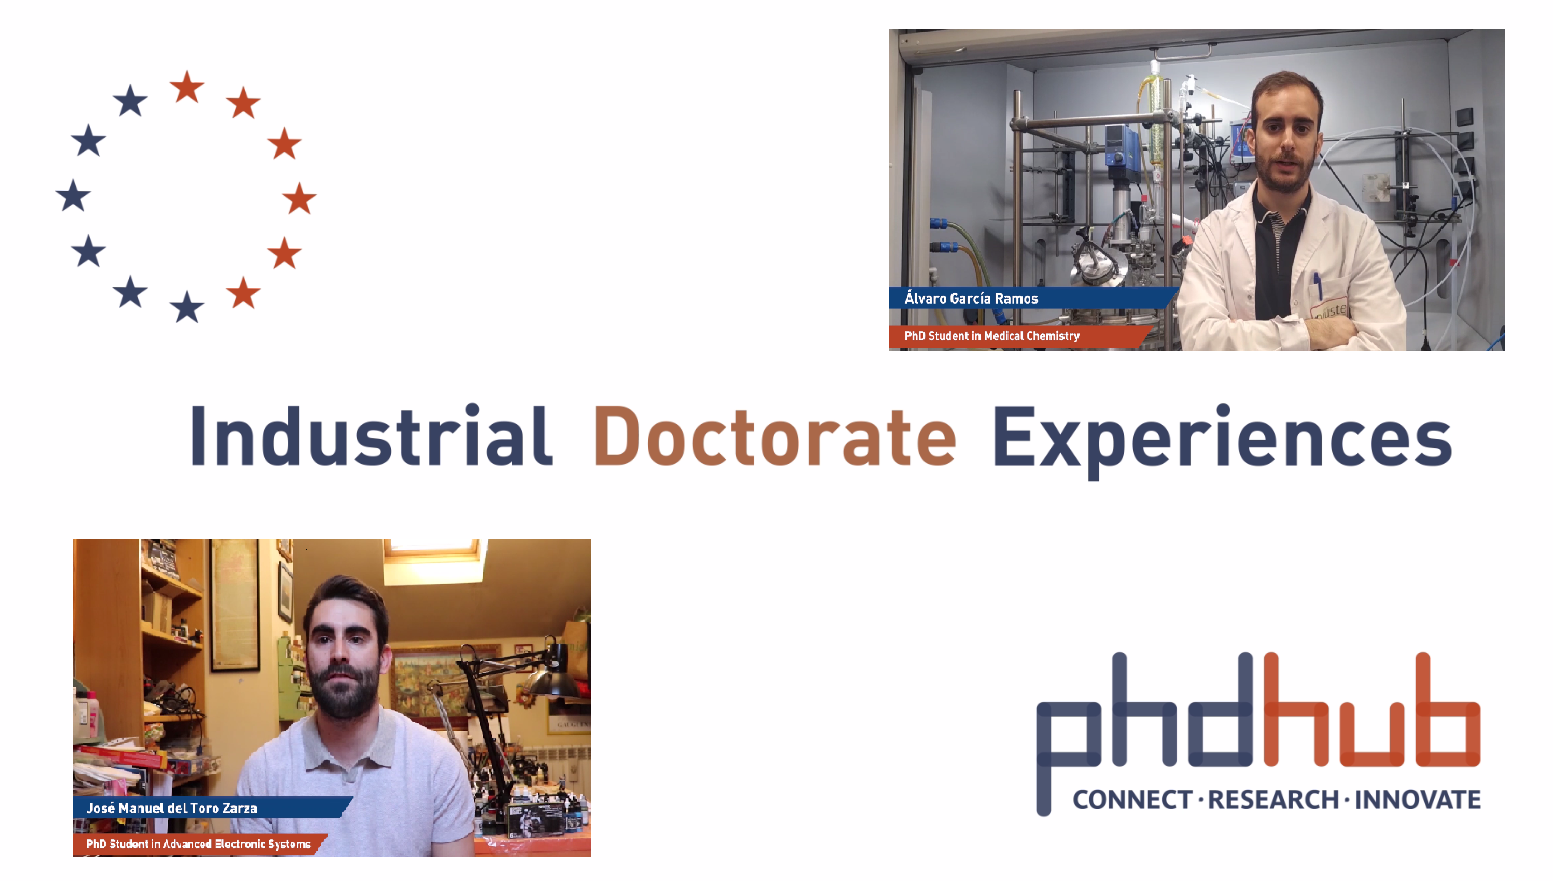 Industrial Doctorate Experiences at Alcala Hub